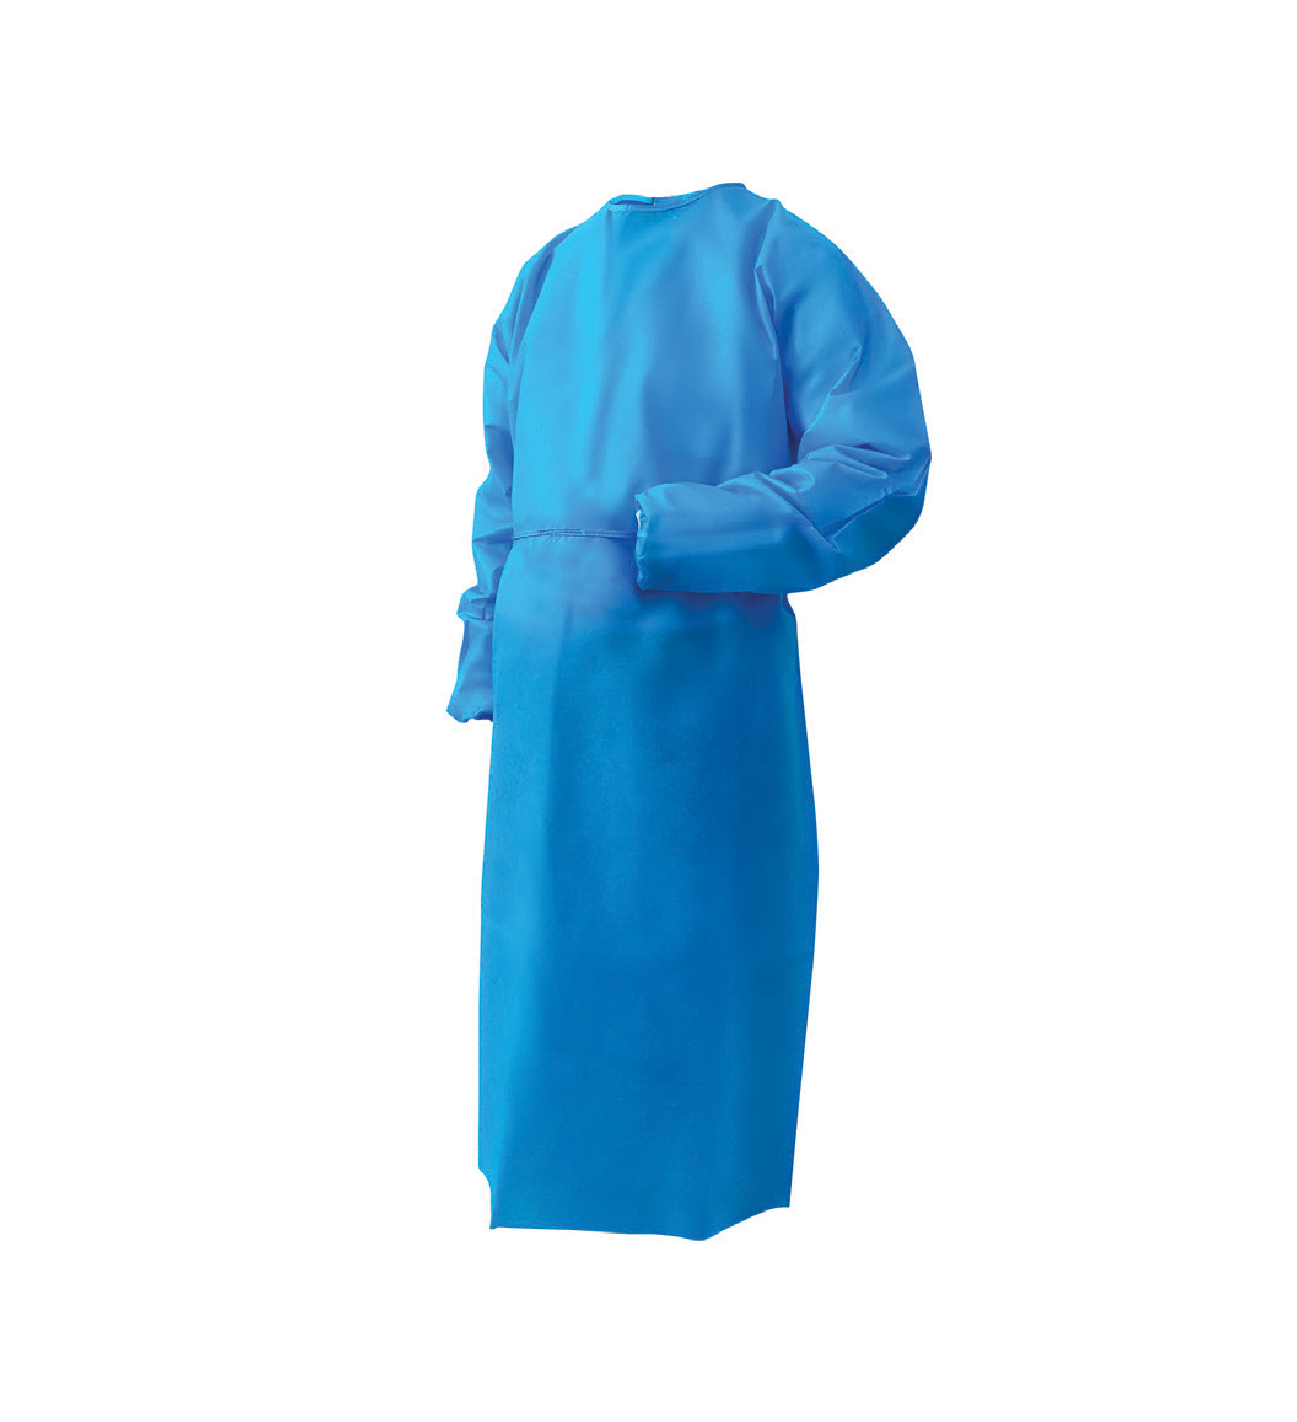 D-Care Standard Gown Velcro